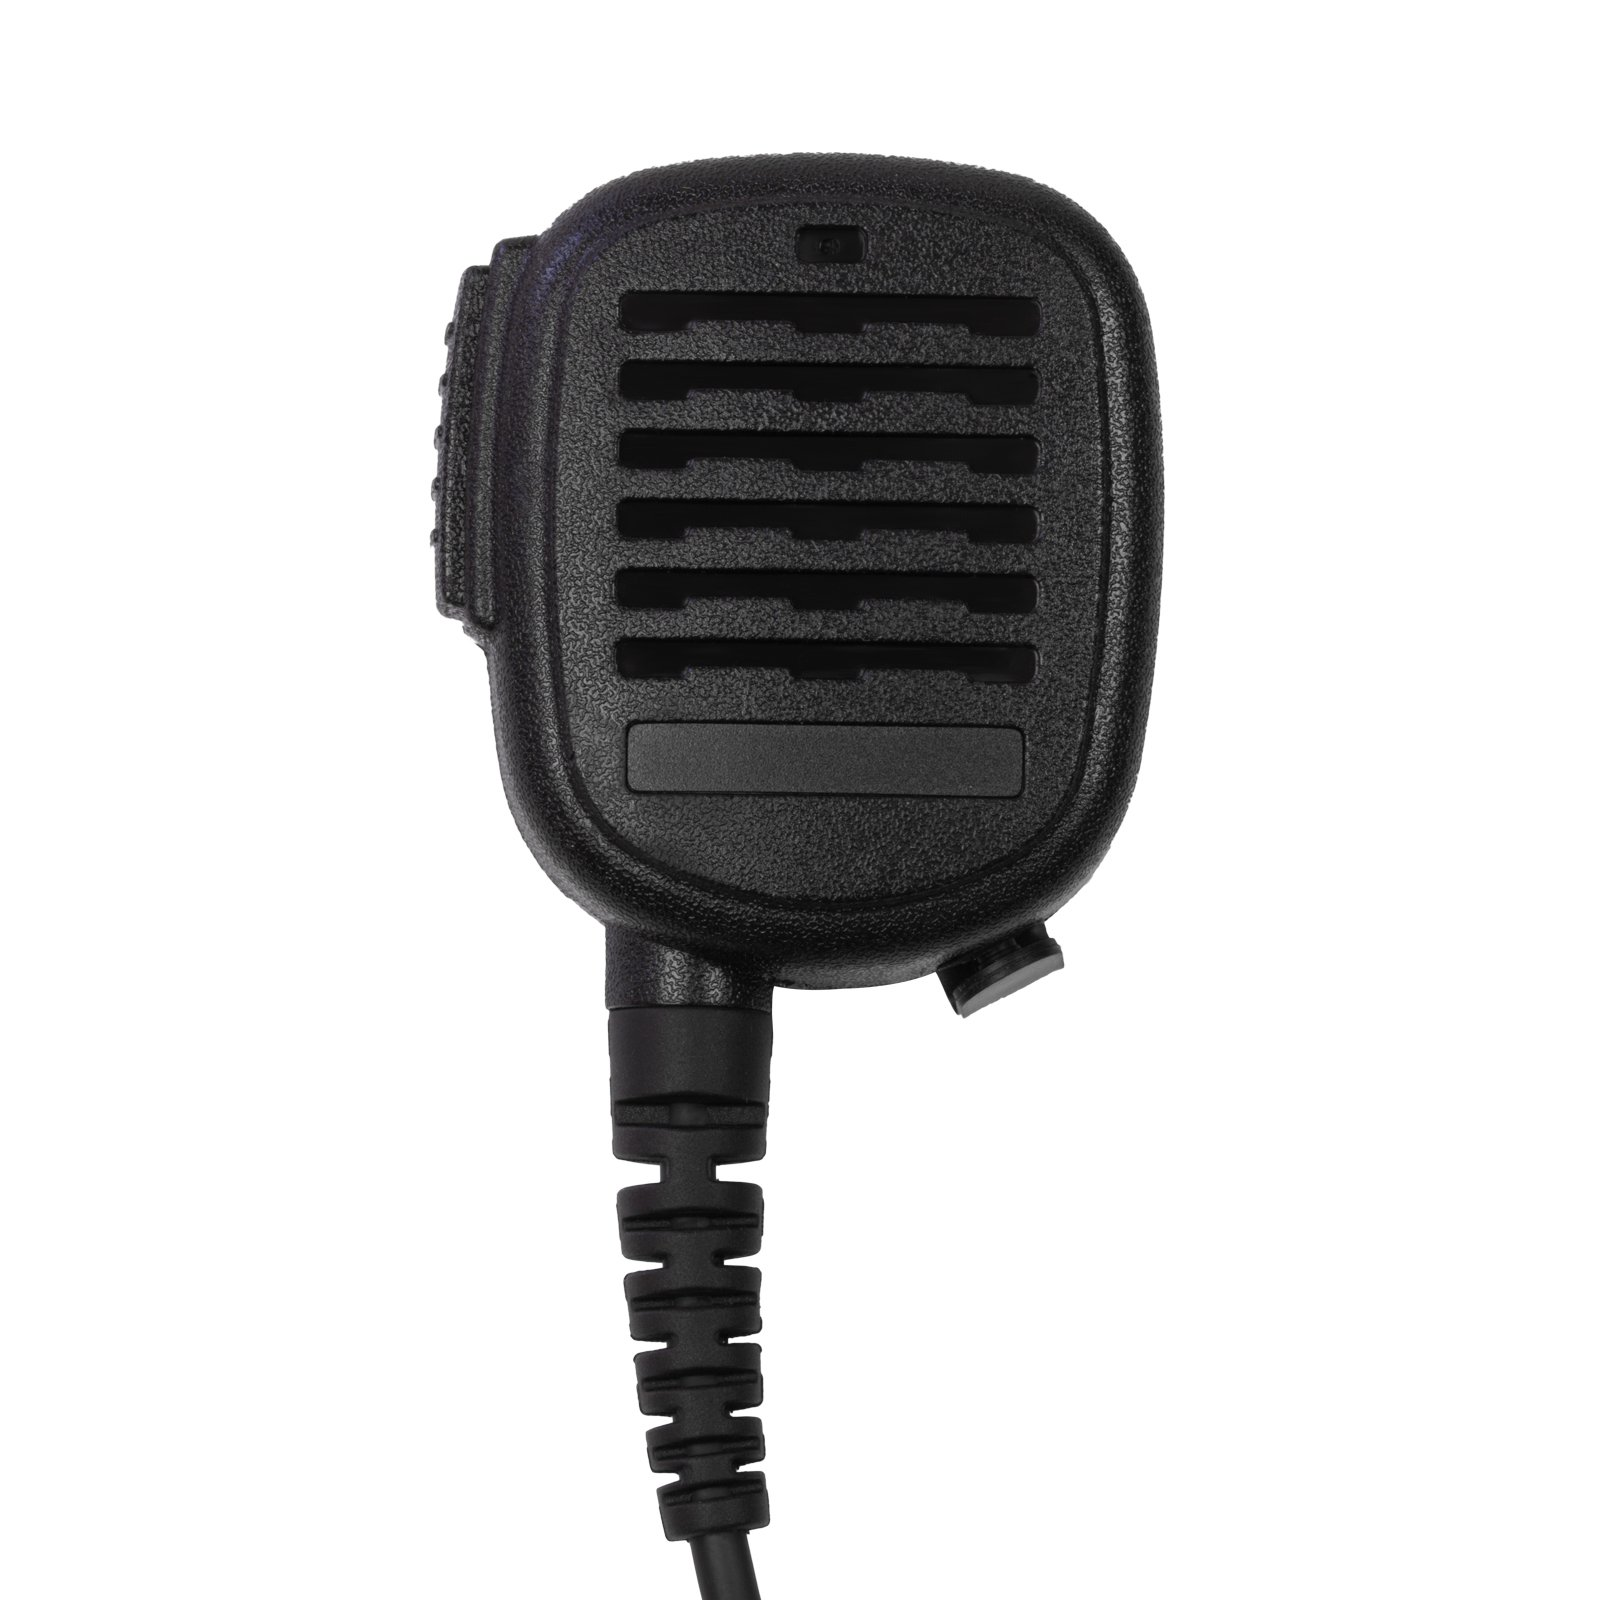 ExpertPower Heavy Duty Speaker Mic for Kenwood and Baofeng Two Way Radios